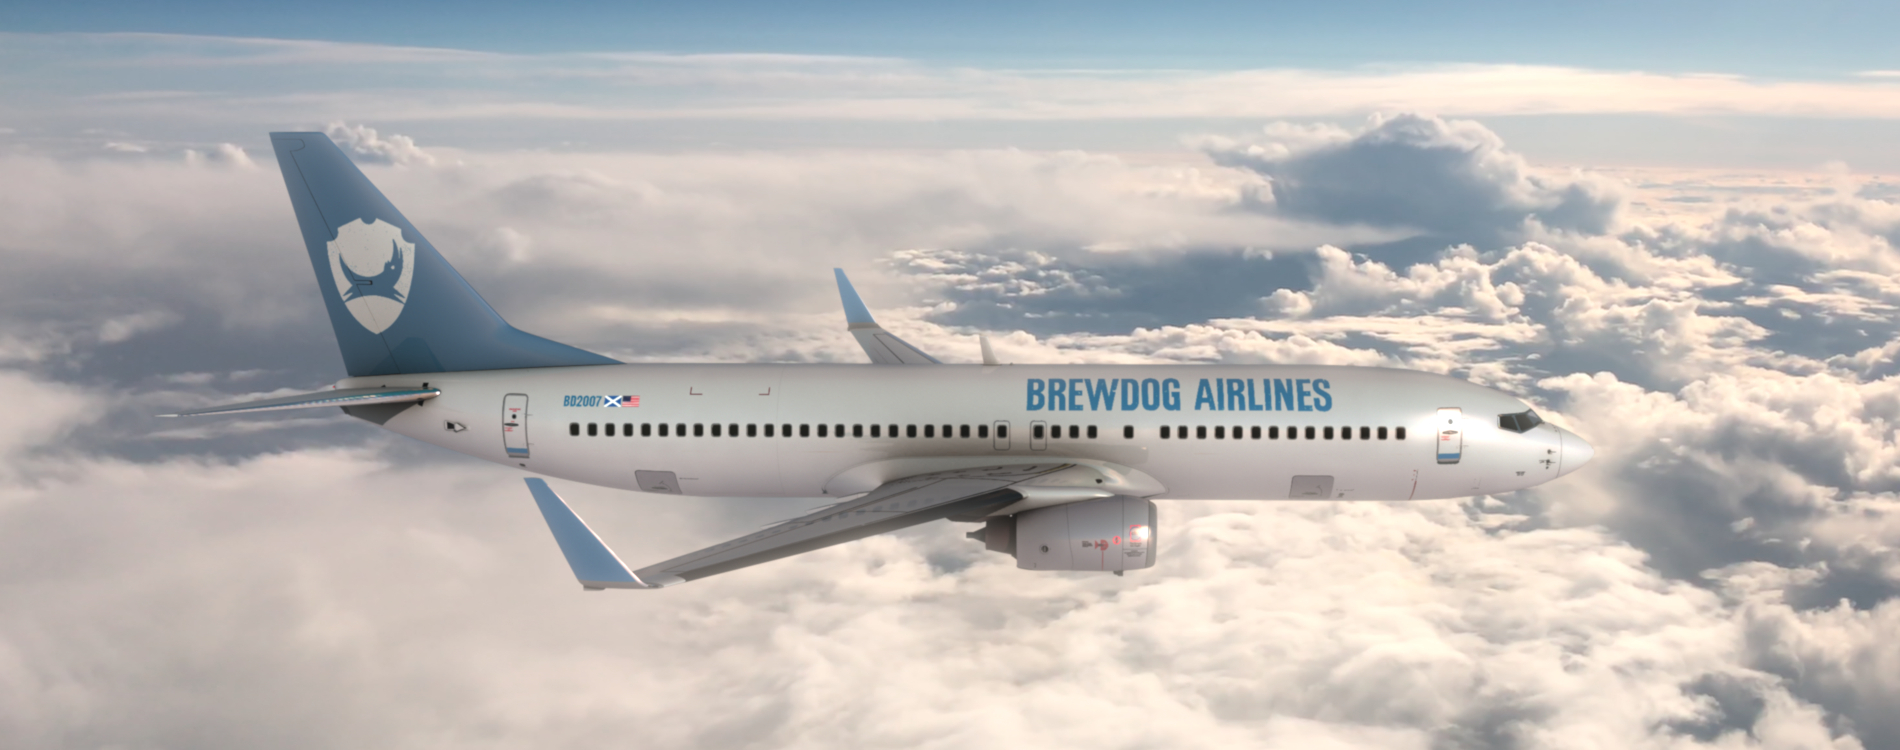 BREWDOG AIRLINES TAKES OFF AGAIN